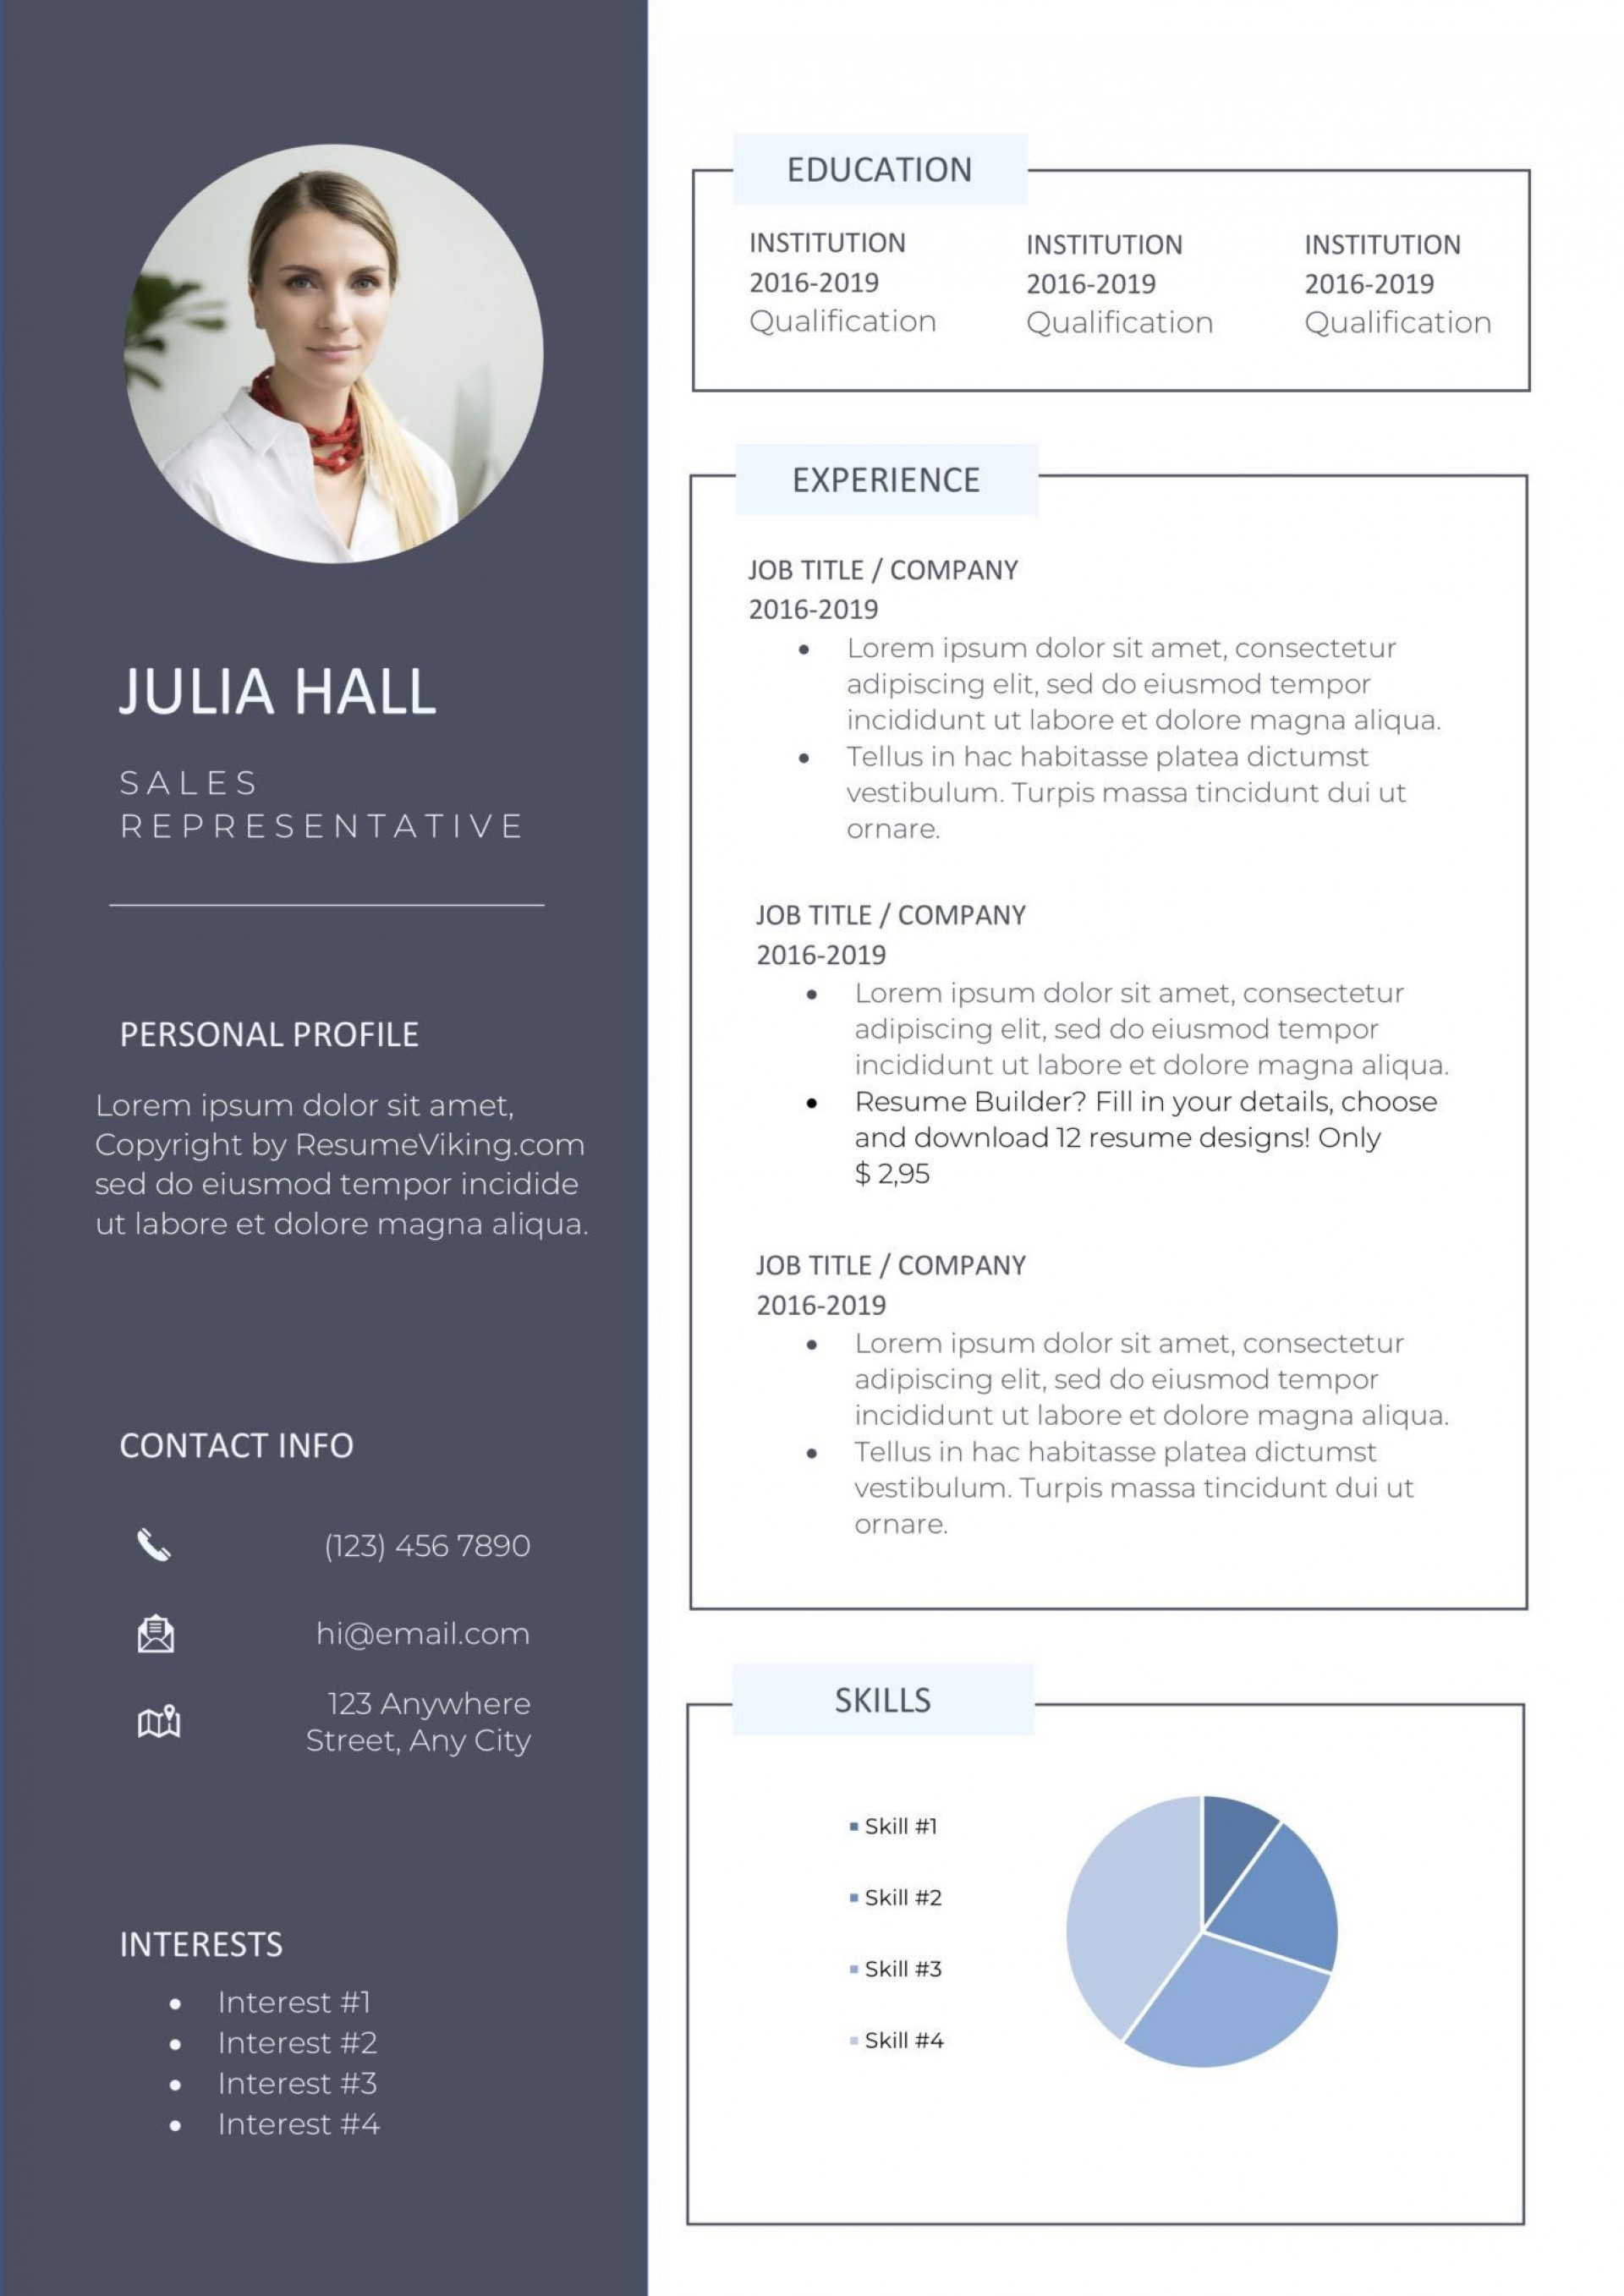 011 Unusual Professional Resume Template Word Free Download Picture  Cv 2020 With Photo1920